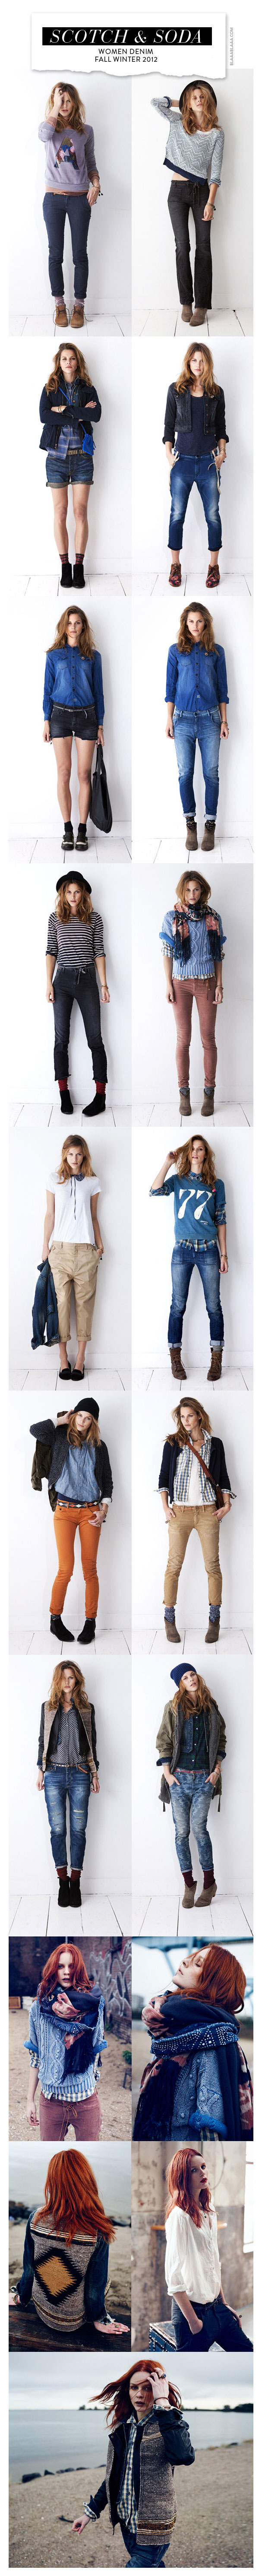 Scotch & Soda Women Denim Fall Winter 2012